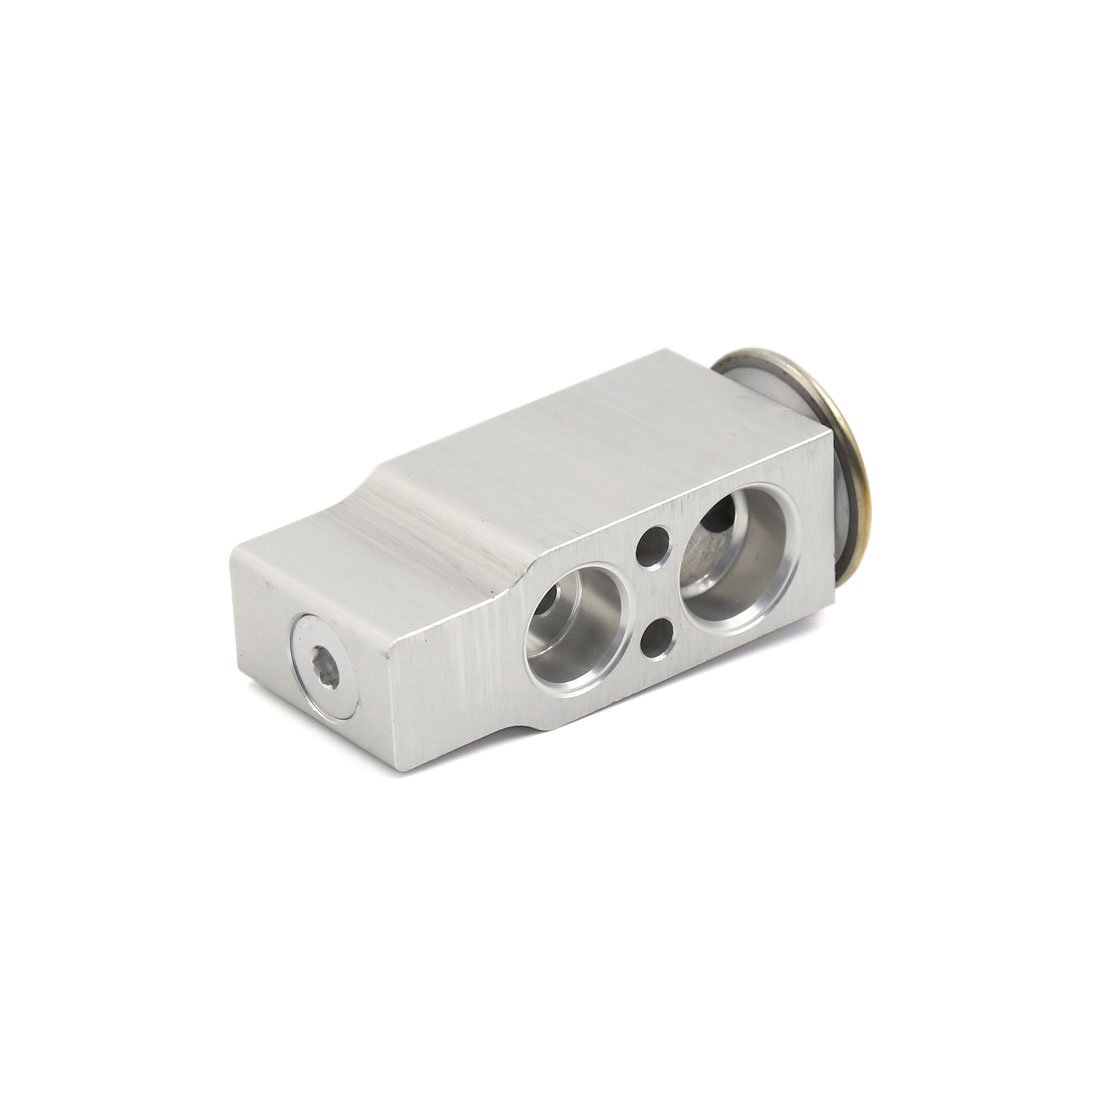 uxcell Car Air Conditioning Cooler Rectangle Expansion Valve for Toyota Camry Corolla by uxcell (Image #2)